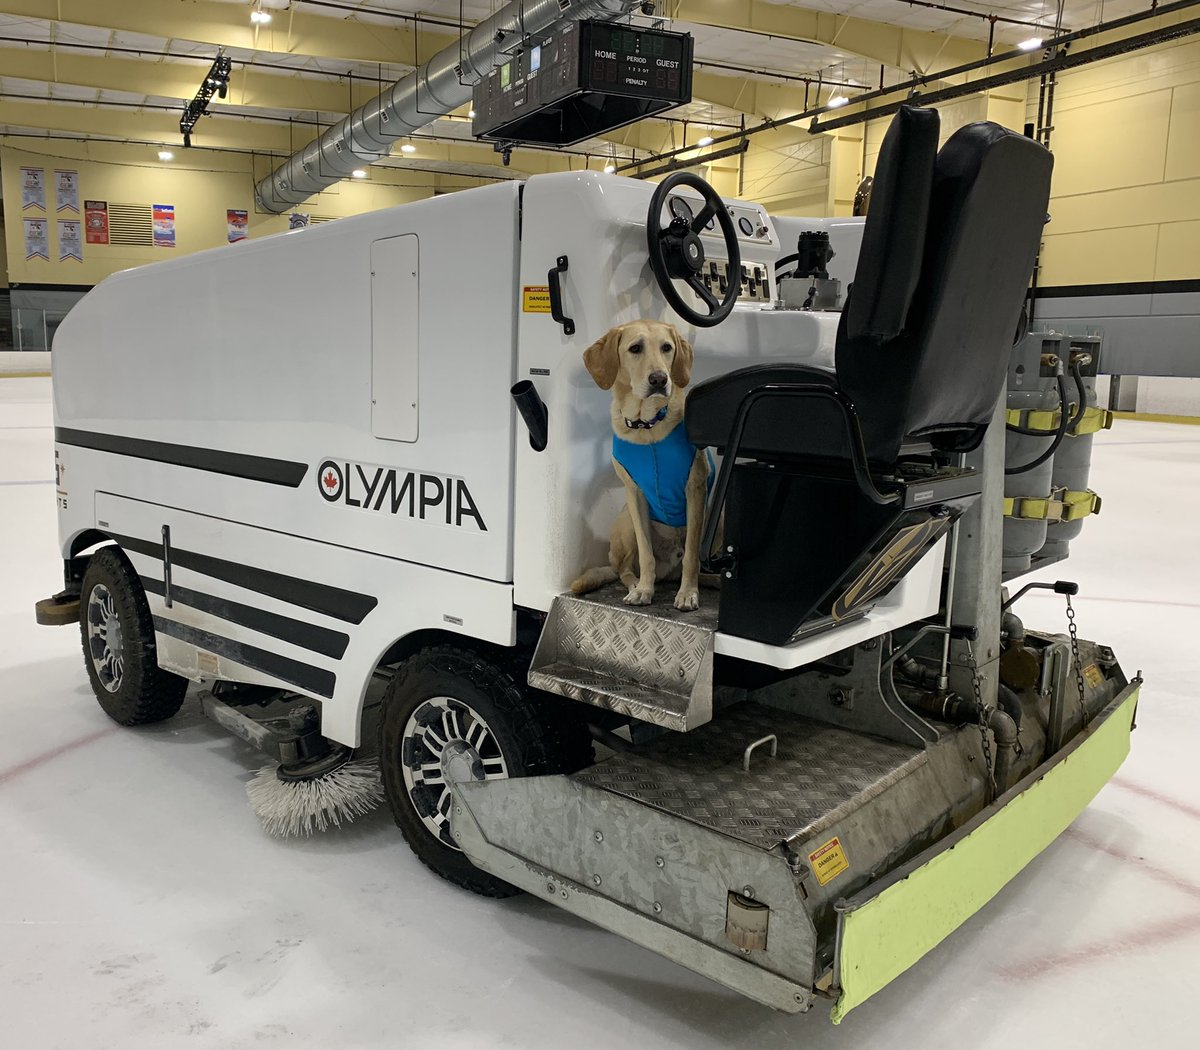 Getting so excited to be driving this again! #gobennygo #iceskatingdog @pepsiicearena Sobe Ice Arena #dogsoftwitter #dog #iceskating pic.twitter.com/ocPTb1JdUE